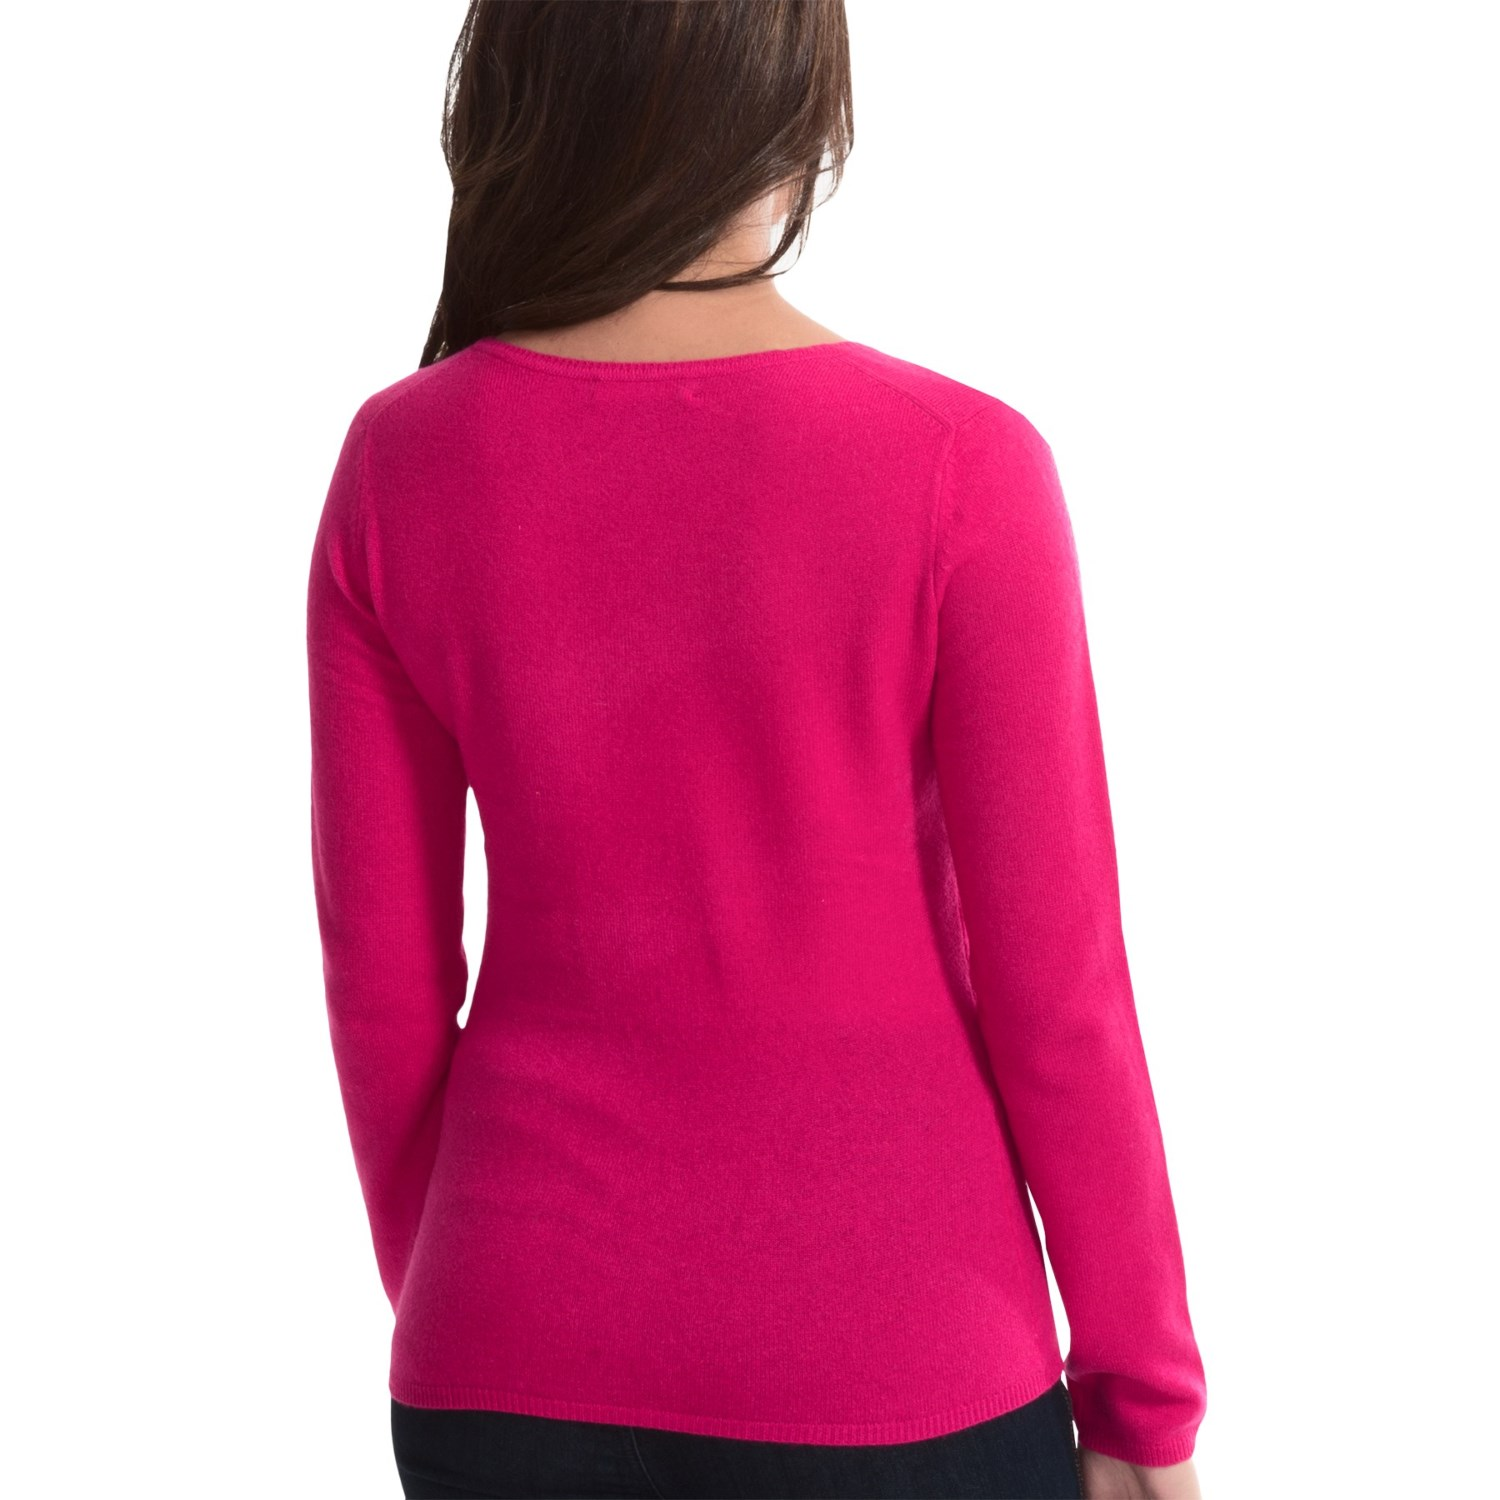 Women Blouses And Tops From Dillards